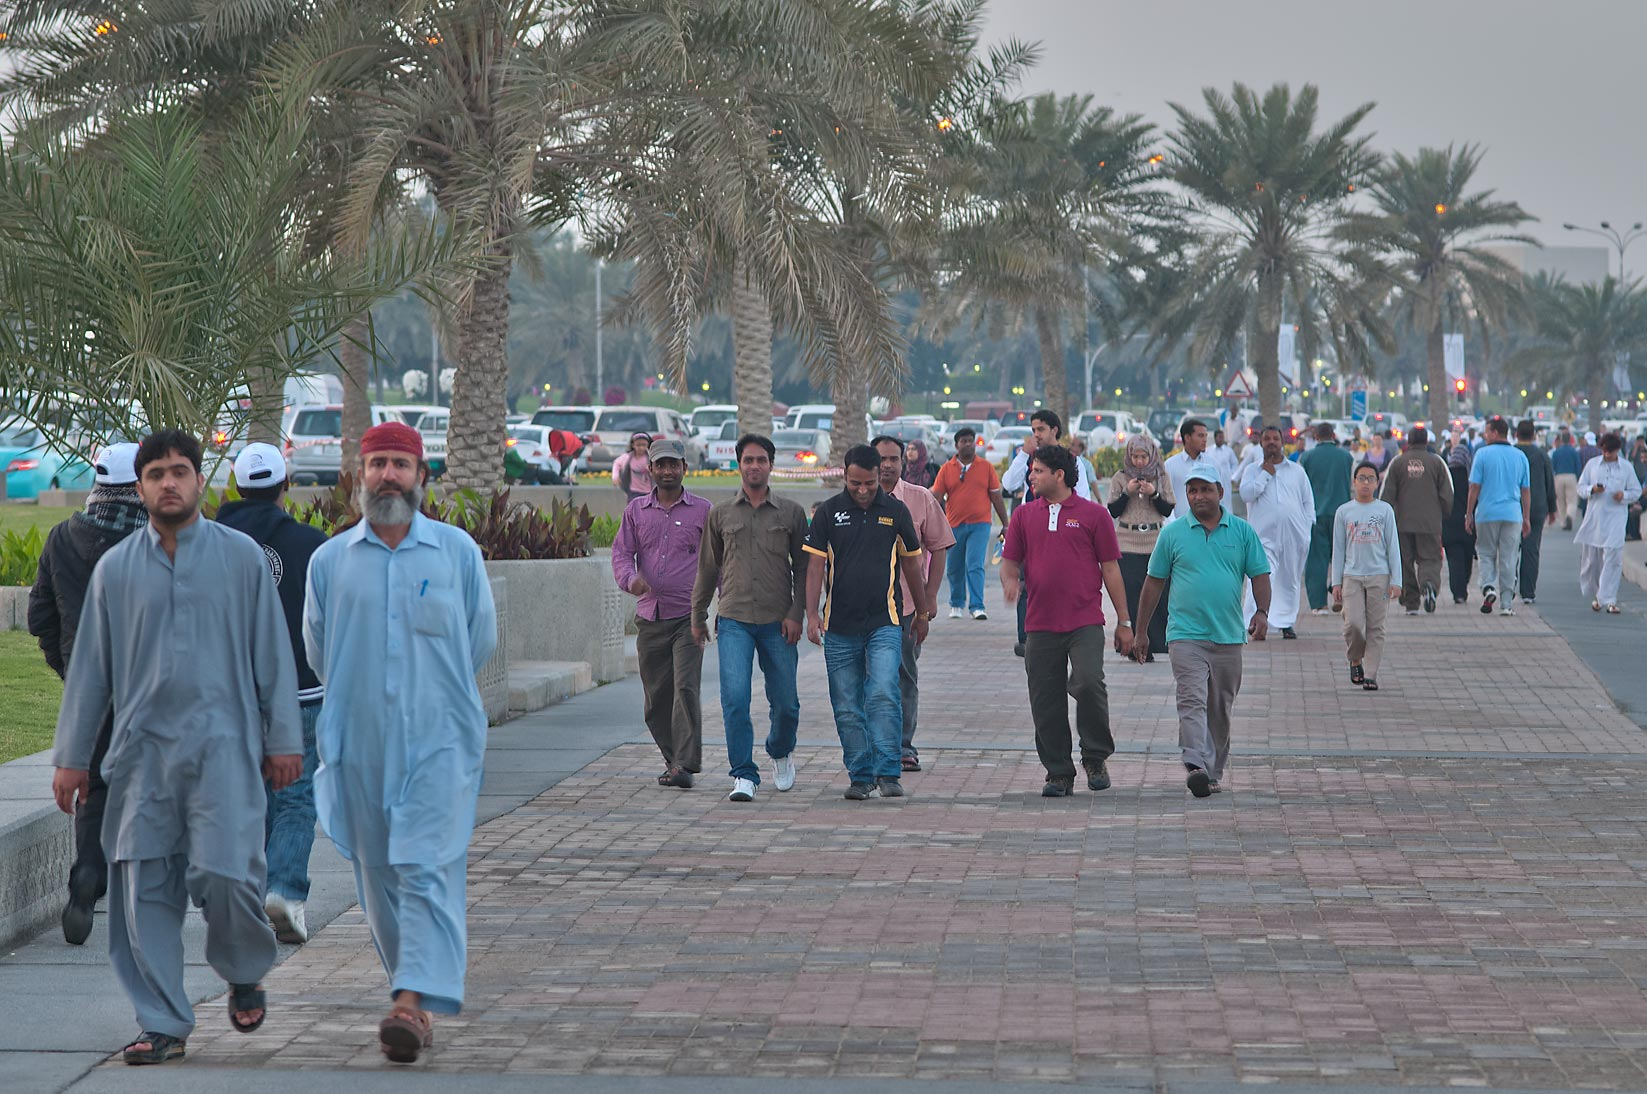 People walking on Corniche during Sports Day holiday. Doha, Qatar